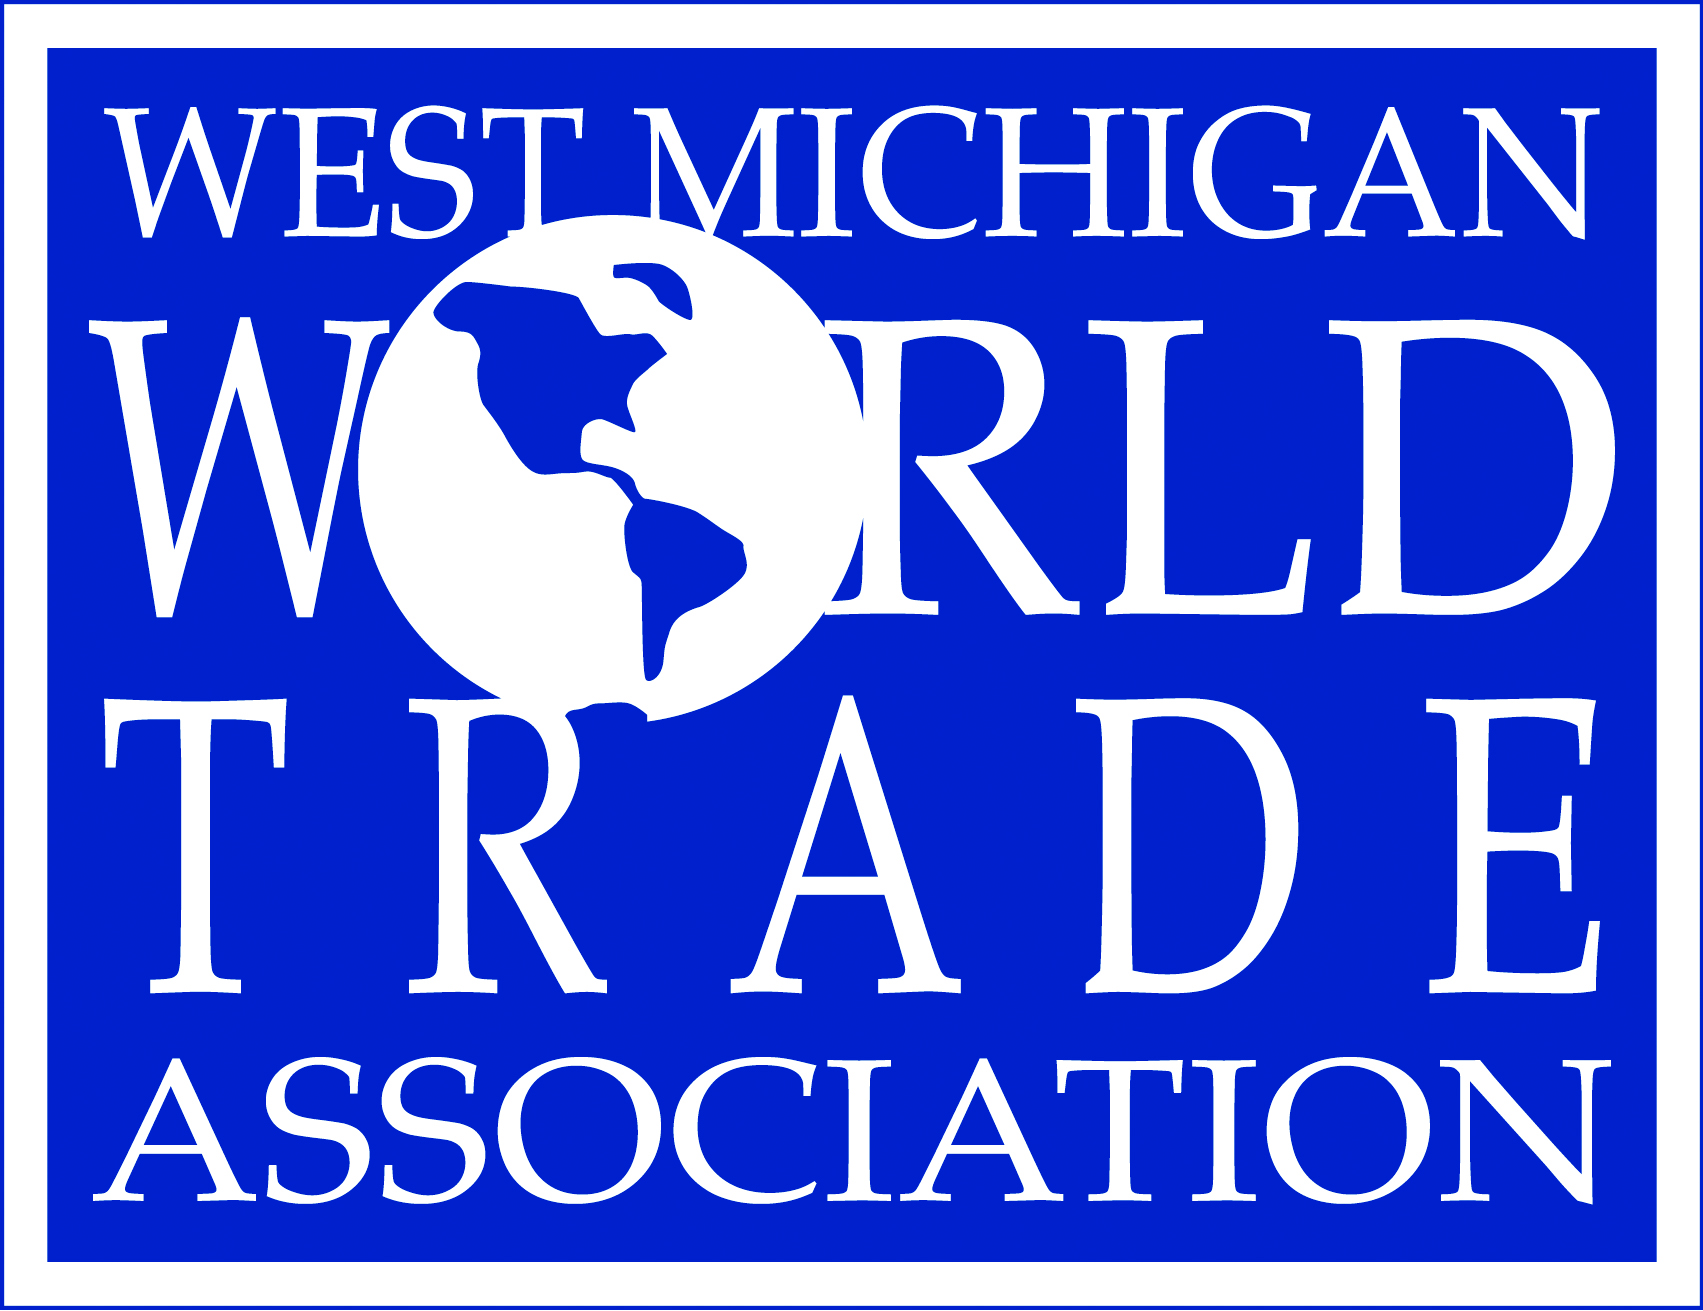 WMWTA logo. Blue Background with white lettering.